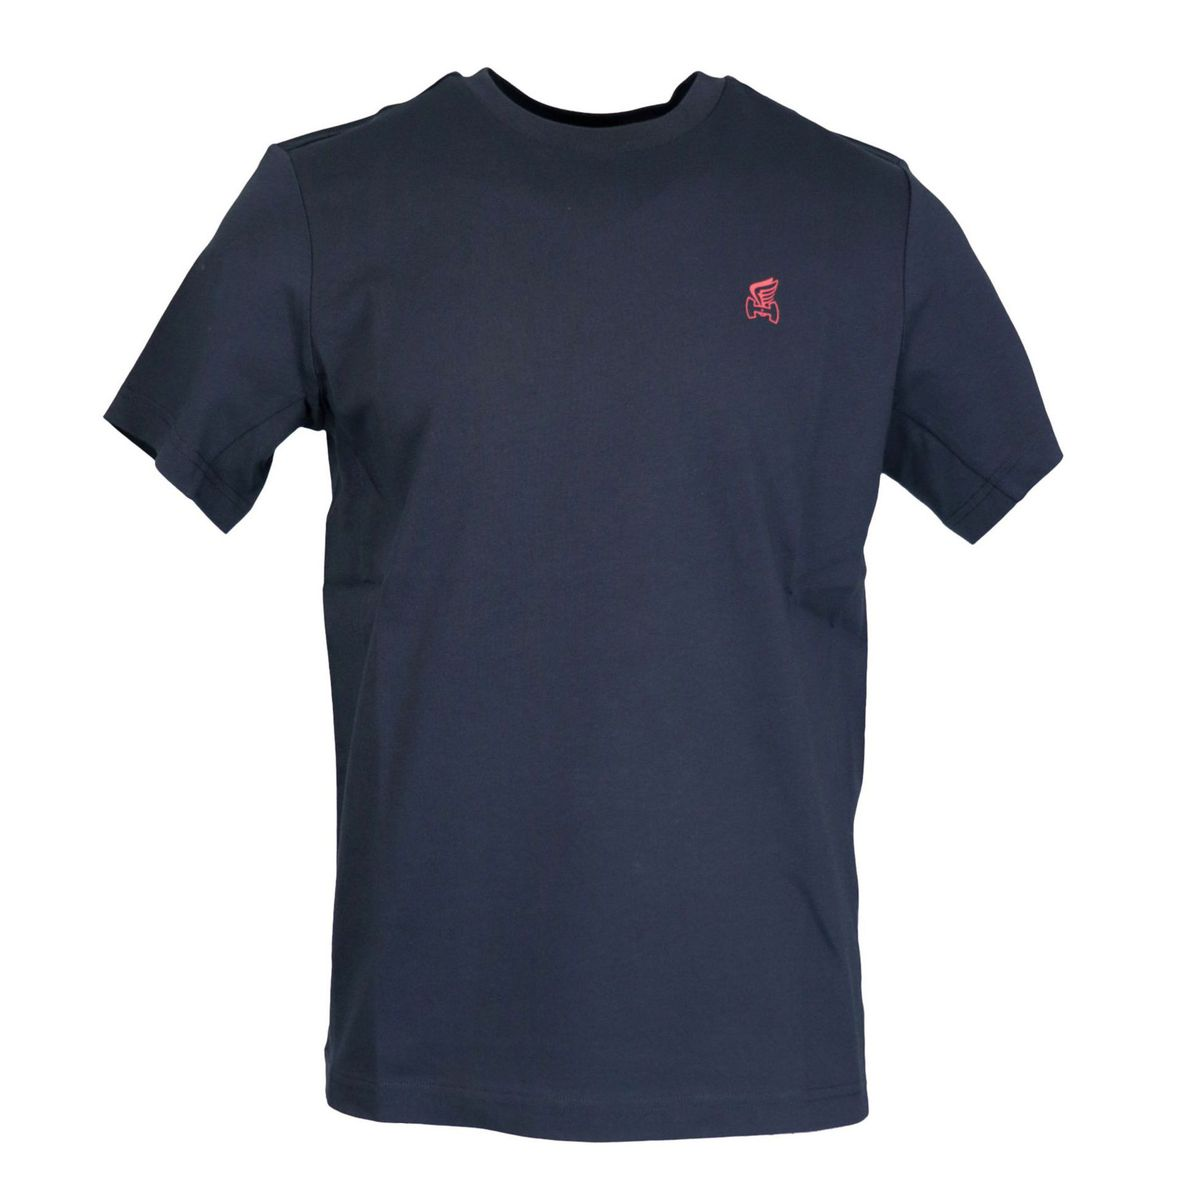 Short sleeve cotton T-shirt with small H logo and wing Navy Hogan